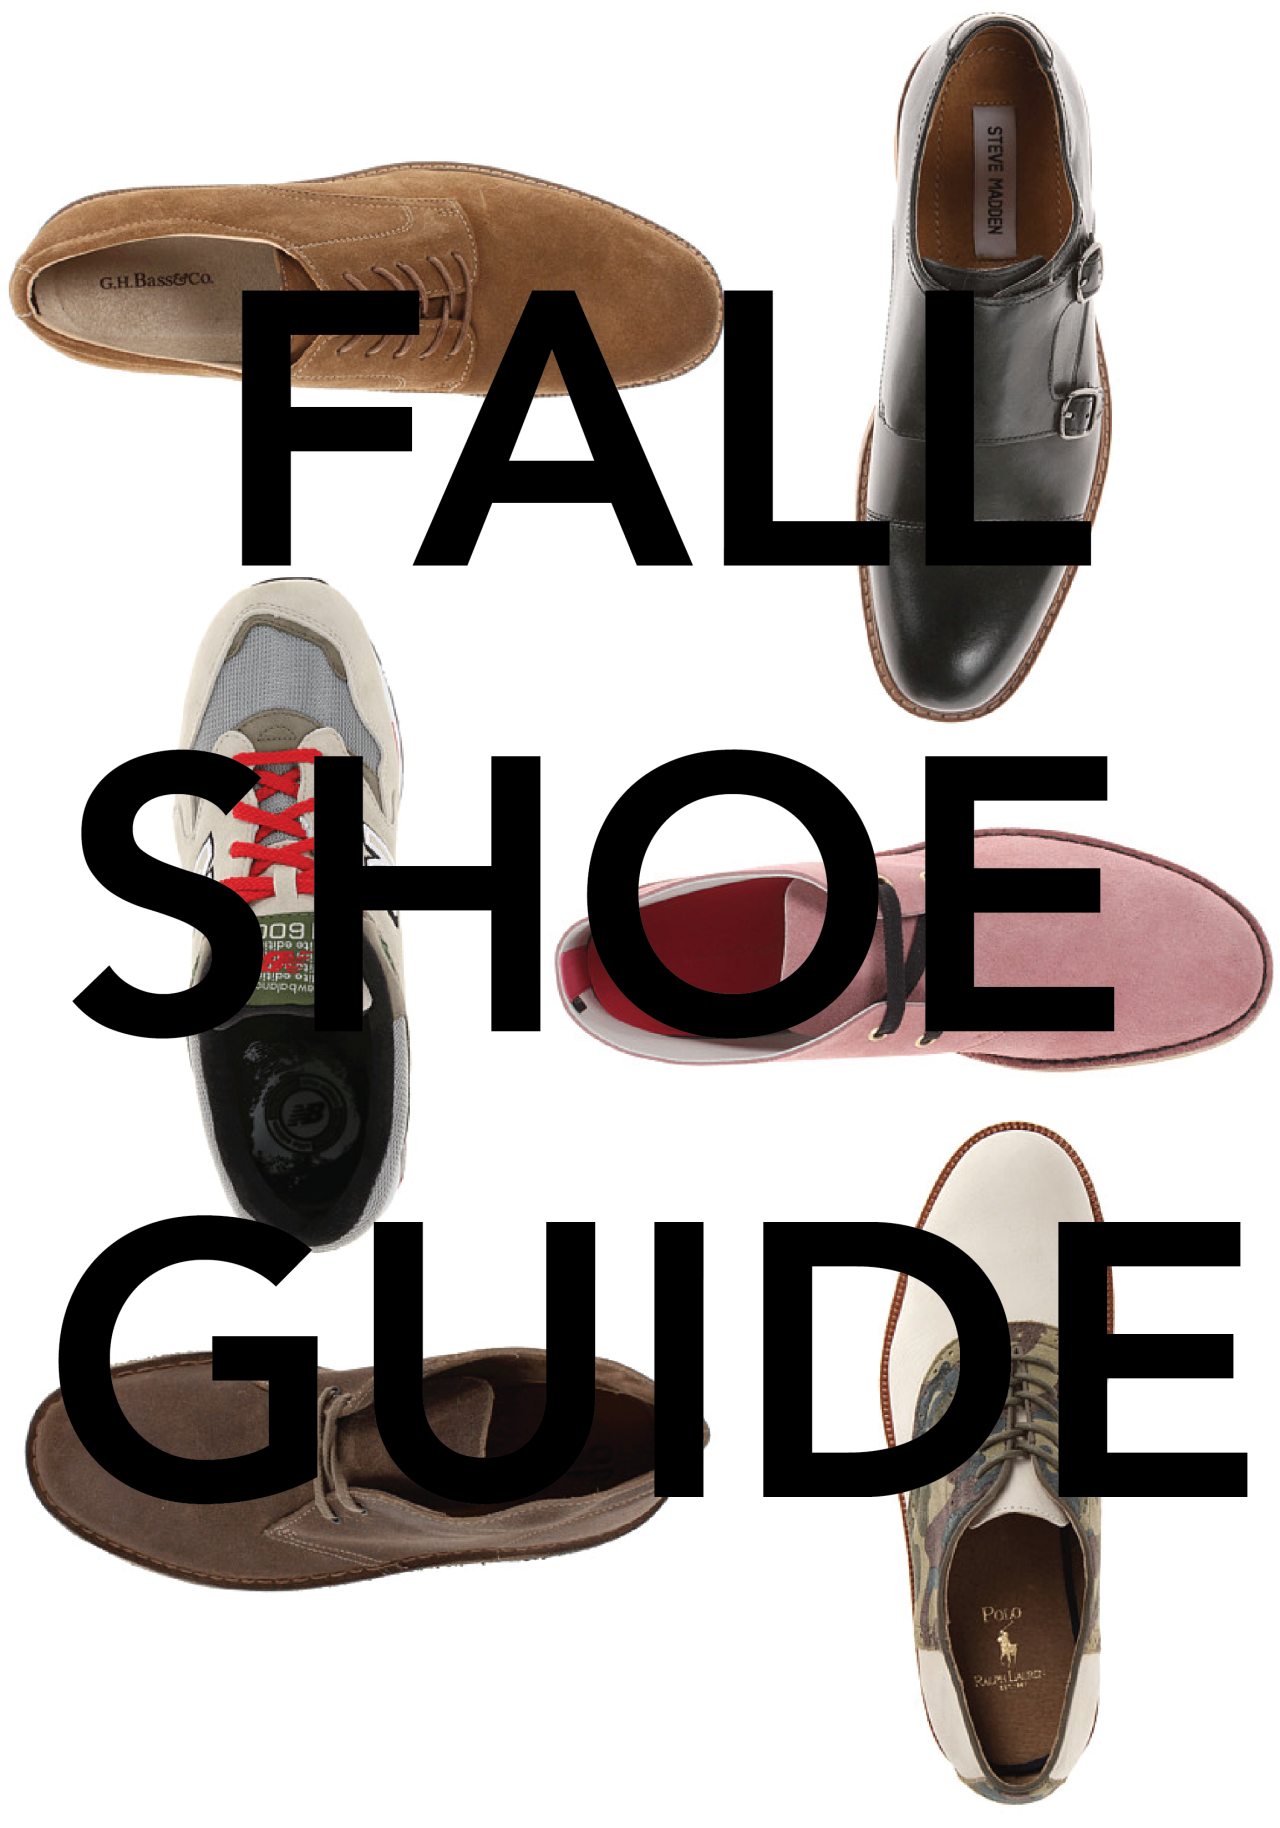 It's time to lace up for fall. Here's my list of must have shoes for the fall season. Each shoe can fit any occasion, from work to play.  Chukka Boots:  A usually ankle-high leather boot with two or three pairs of eyelets or a buckle and strap. - Shop L.L.Bean Signature  Desert Boots: A brand of laced ankle-high boot of soft suede with a crepe sole.- Shop Clarks  Bucs: Casual oxford shoes made of buckskin,often in white or a neutral color. - Shop G.H. Bass Sneakers: Sneakers are becoming more and more versatile than ever before. Their not just for sports or the gym anymore. - Shop KithNYC Saddles: An oxford-style shoe having a saddle of contrasting color or leather. - Shop Florsheim Wingtips: An often perforated shoe part that covers the toe and extends backward along the sides of the shoe from a point at the center. - Shop ColeHaan Monkstraps: A strap passing over the instep of a monk shoe and holding the shoe to the foot. - Shop  Mr. Porter